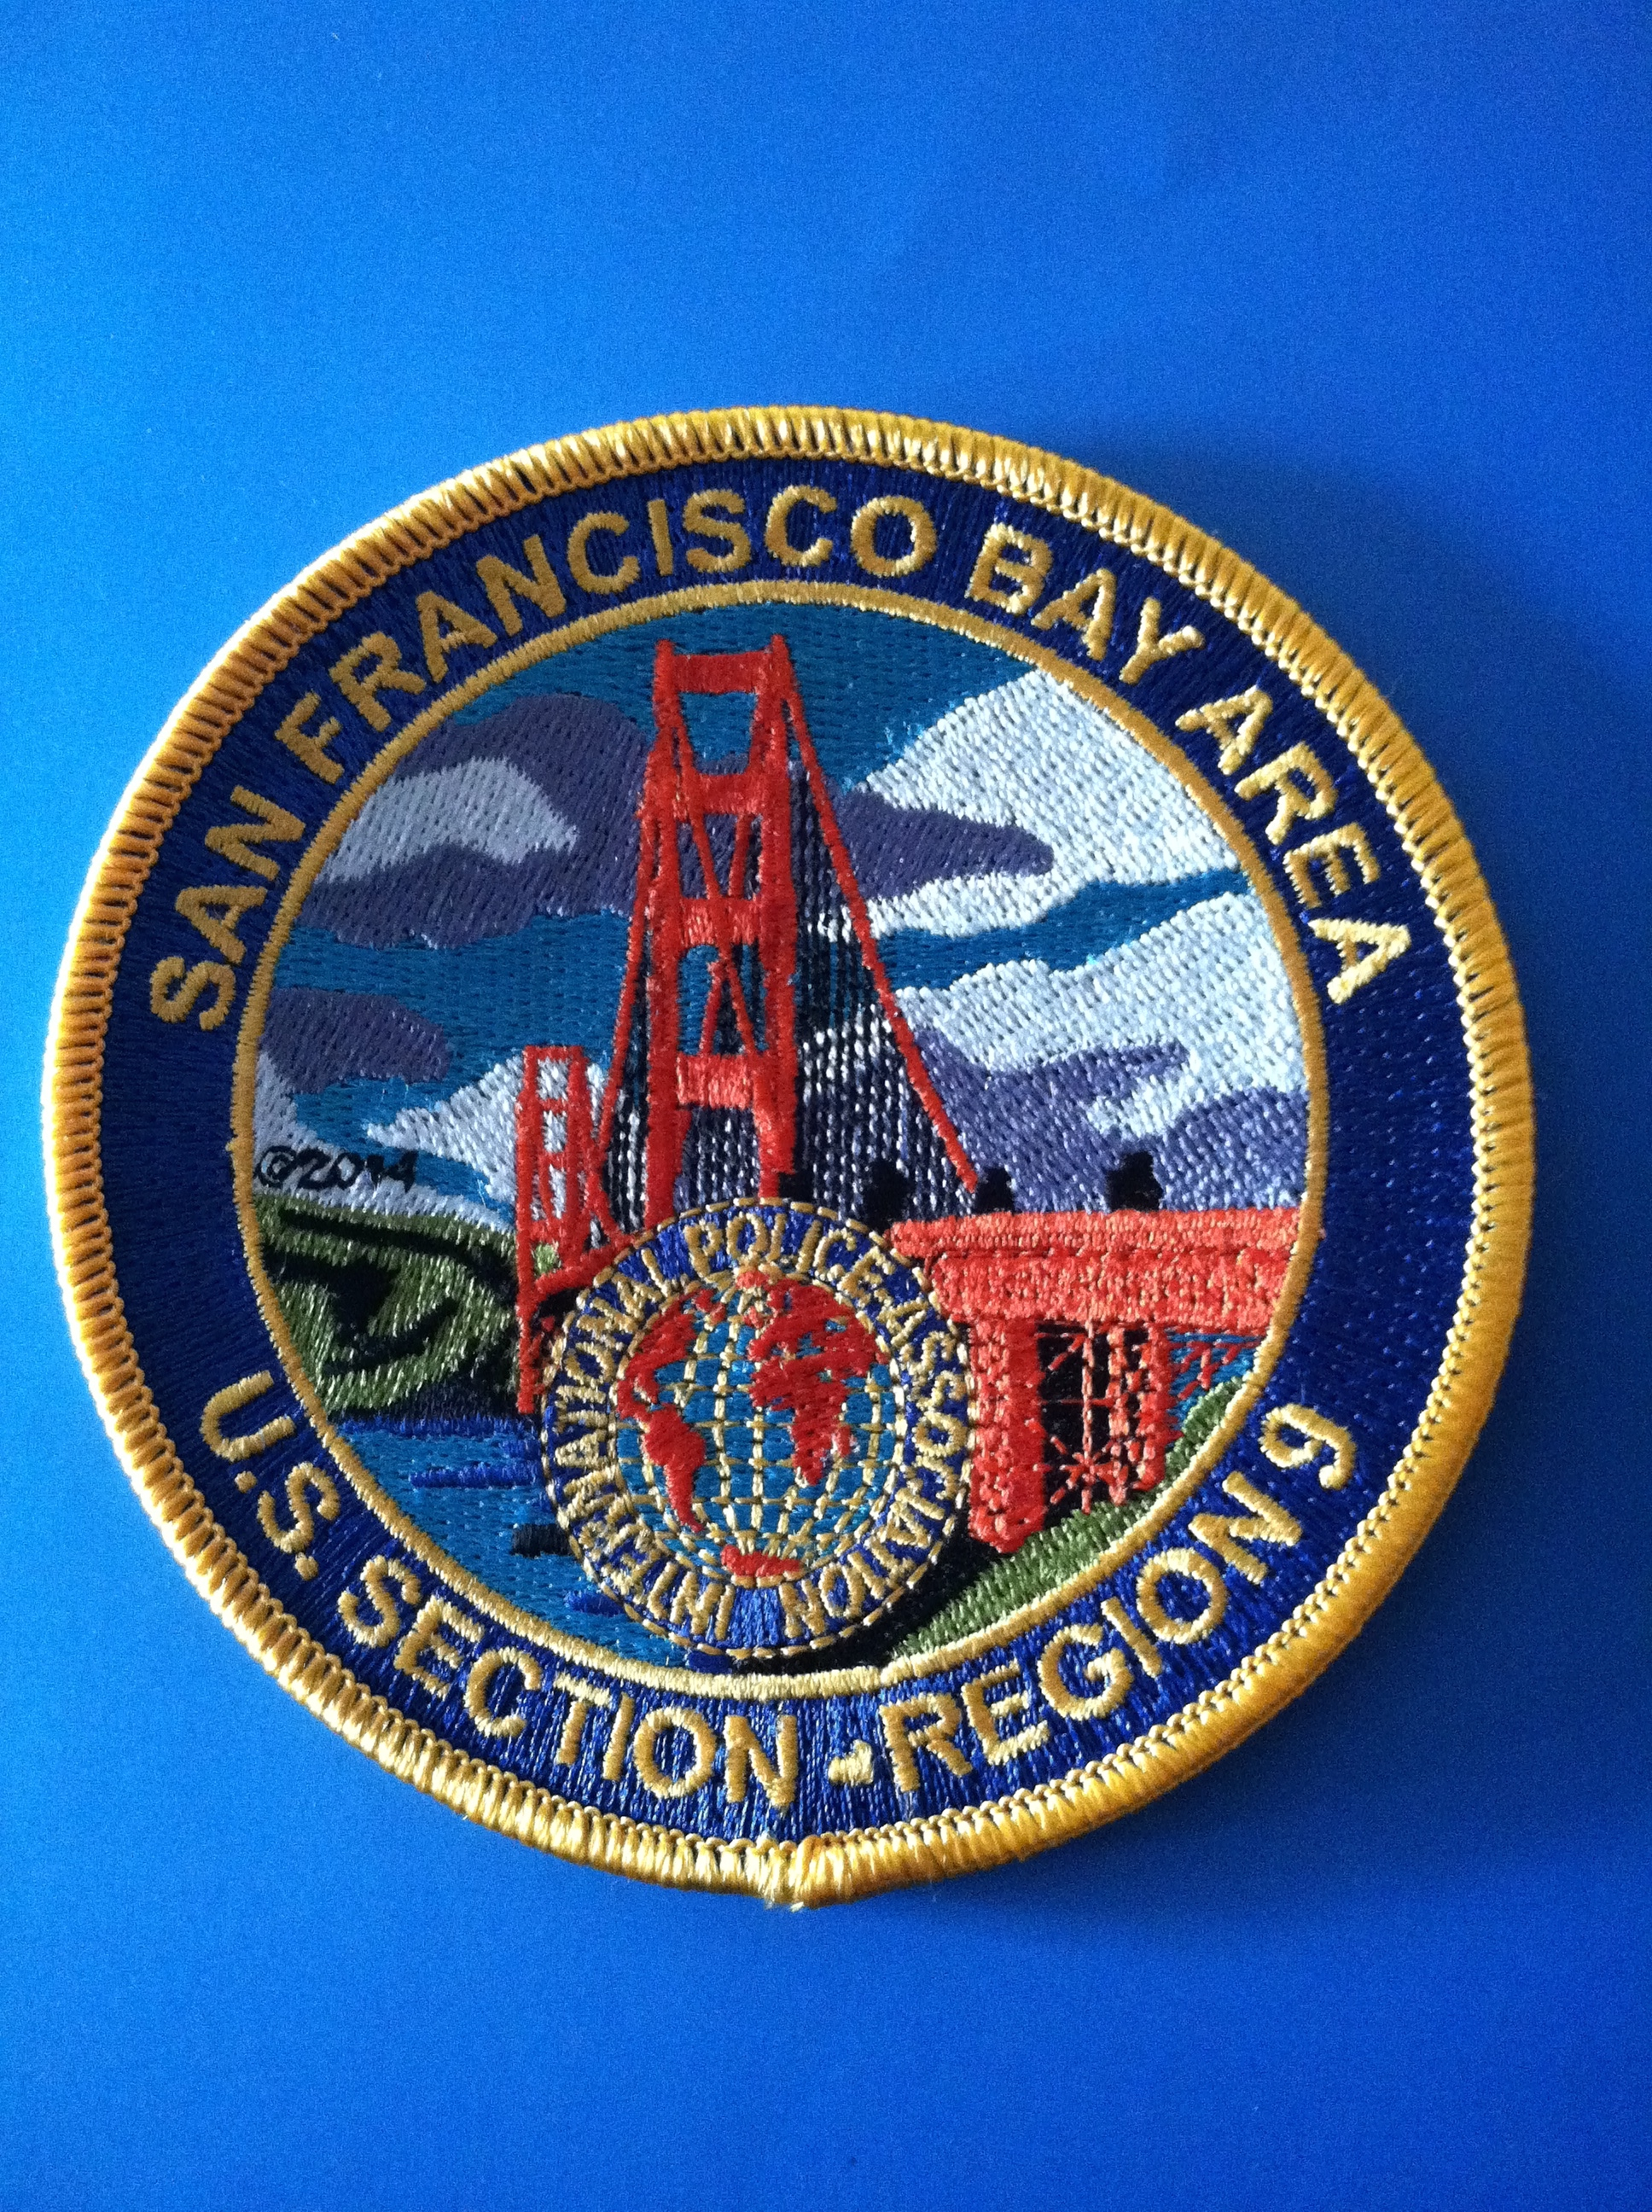 New Region 9 souvenir patch - Available May 2014